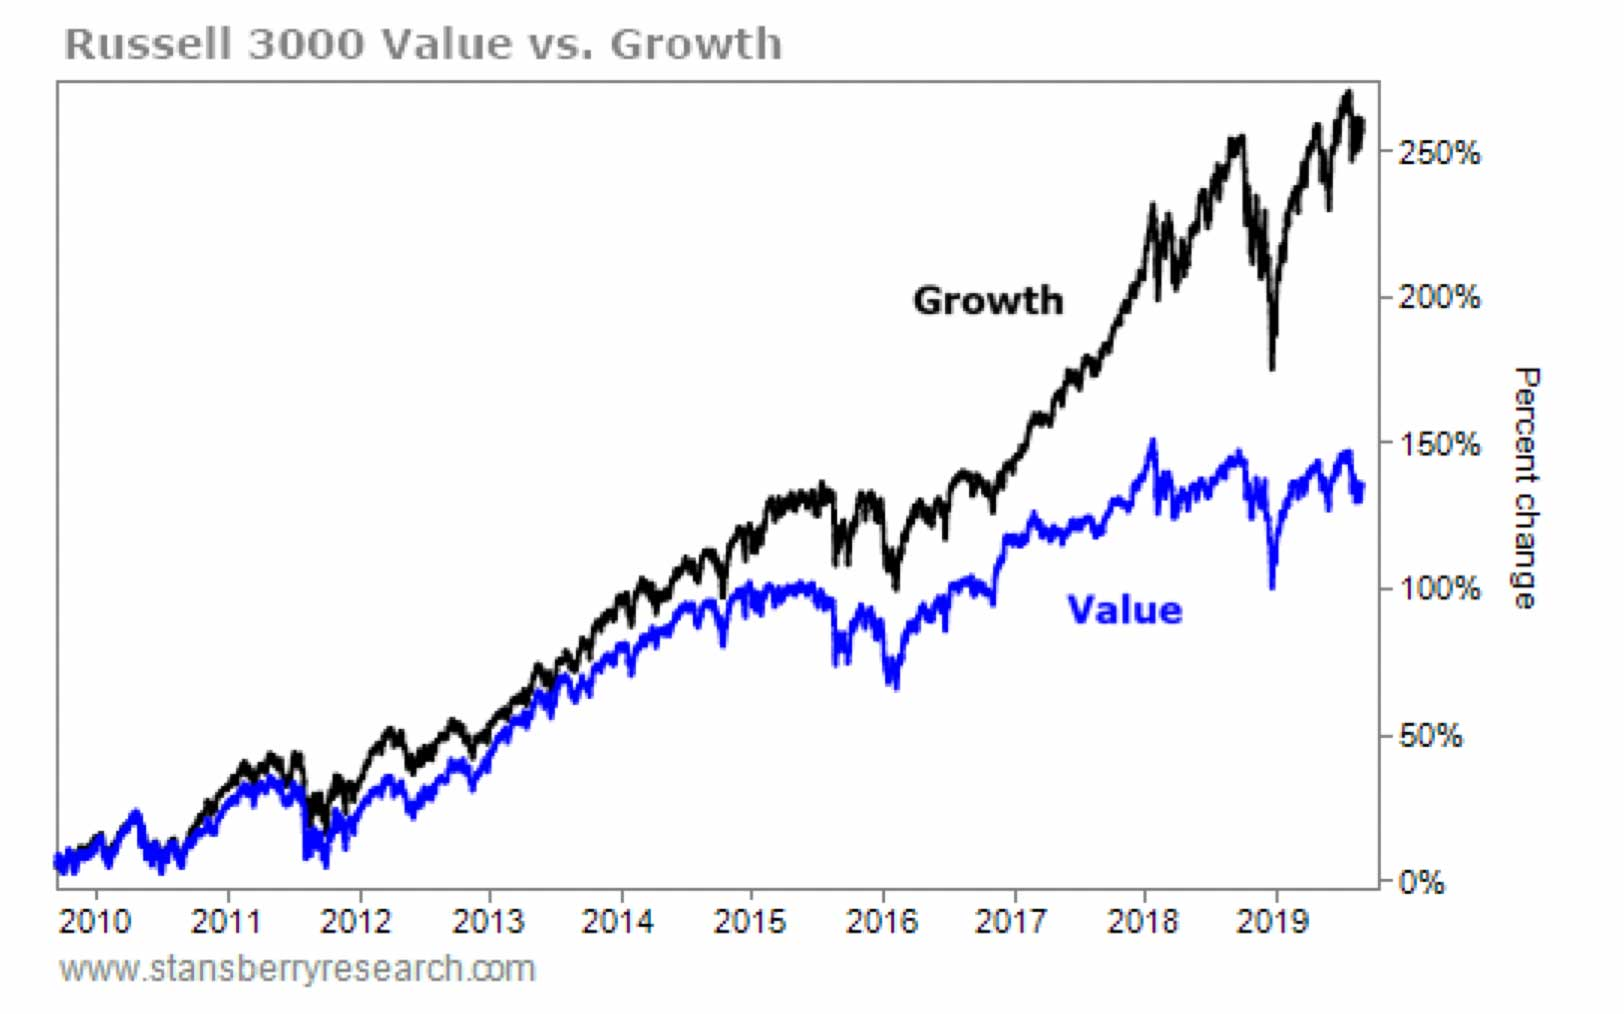 Value vs. Growth Stock Performance